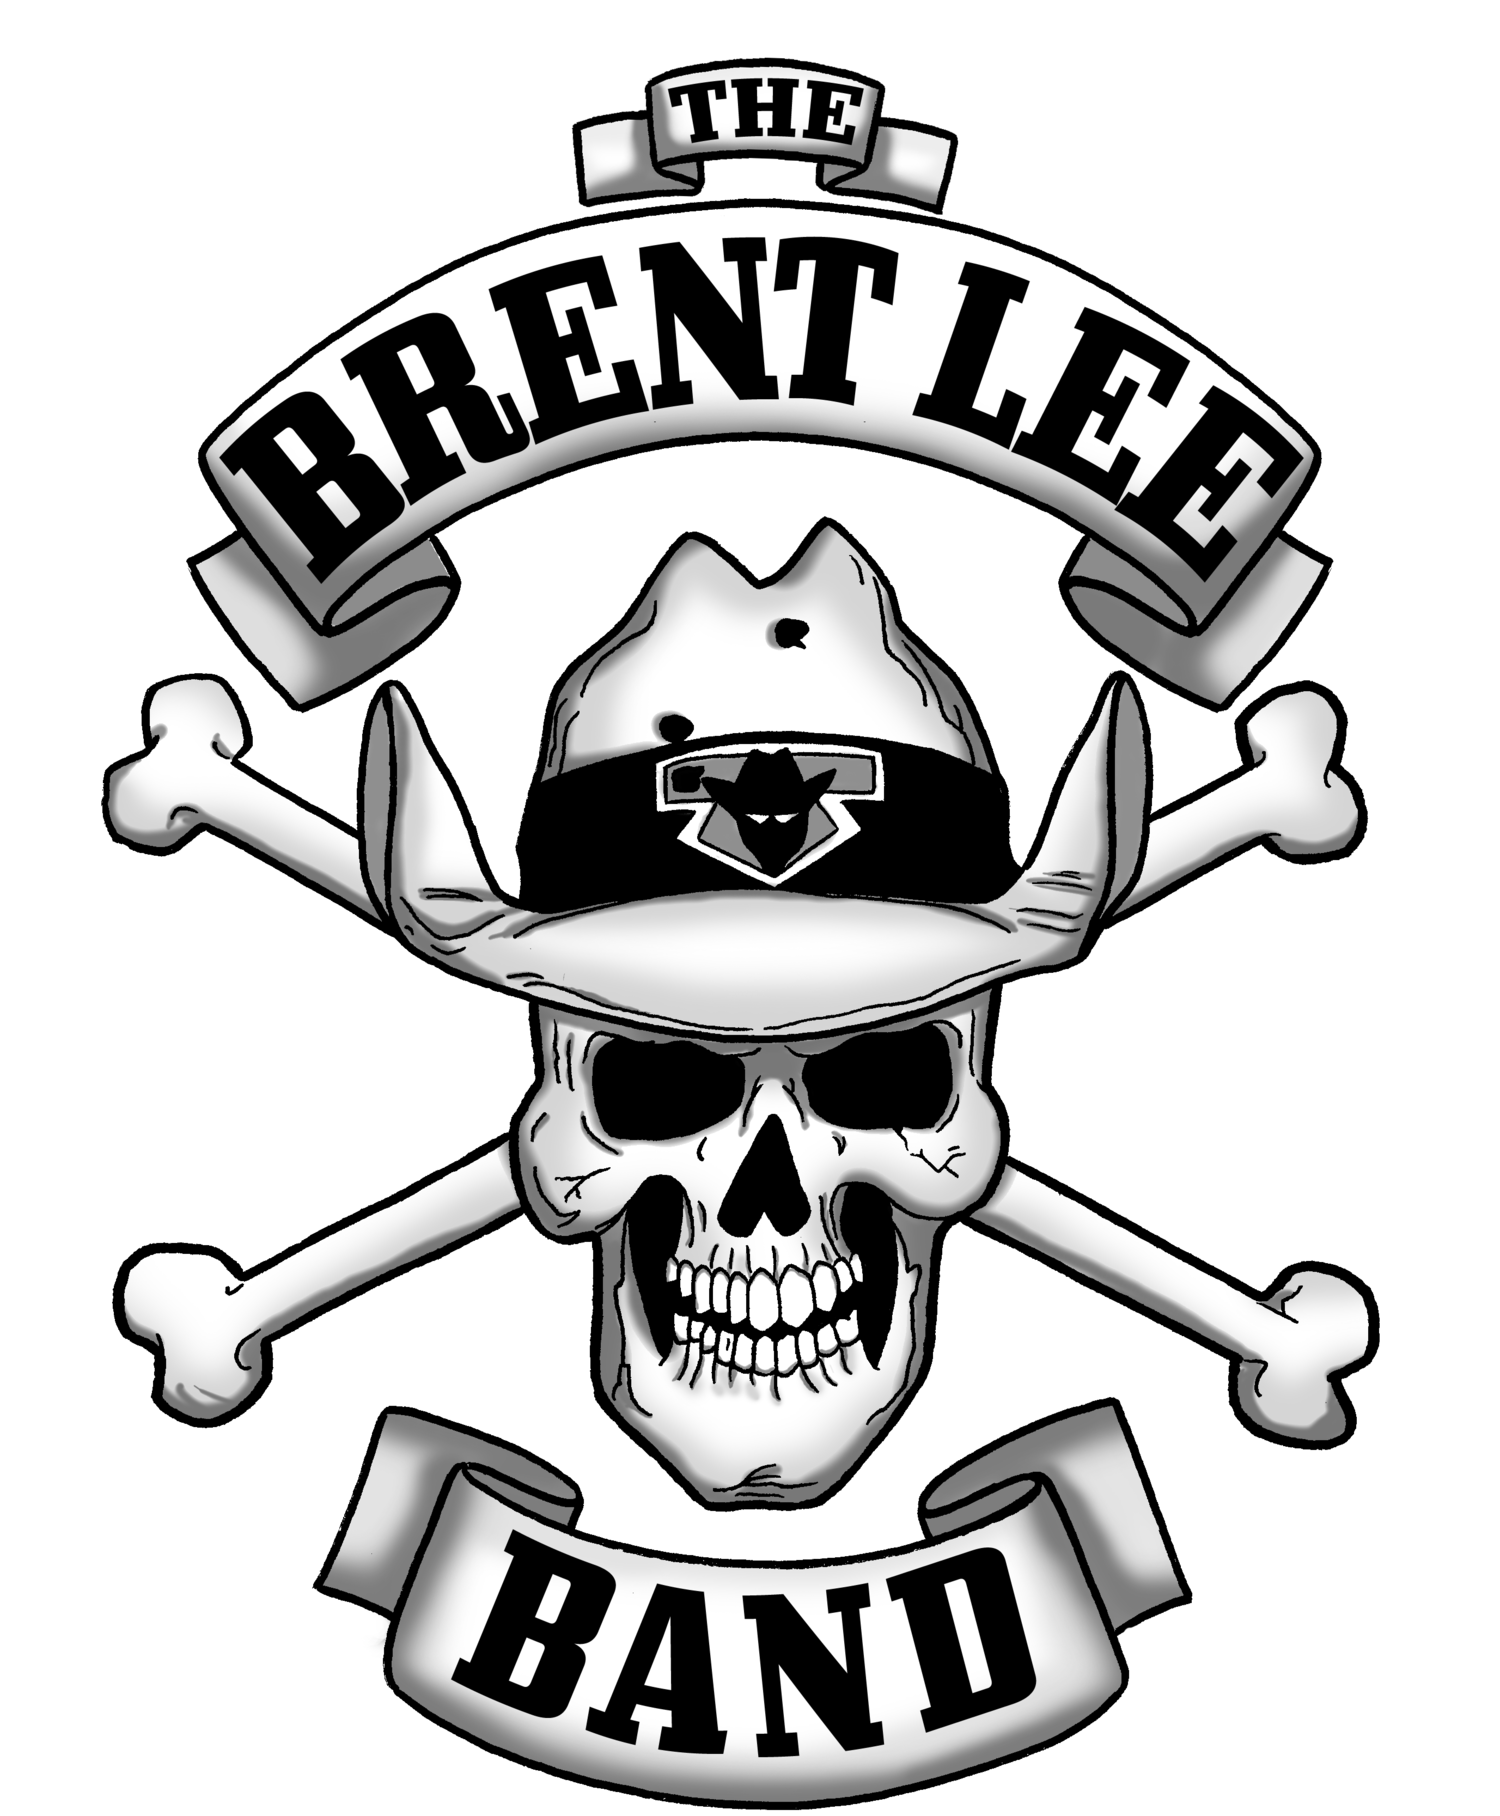 The Brent Lee Band